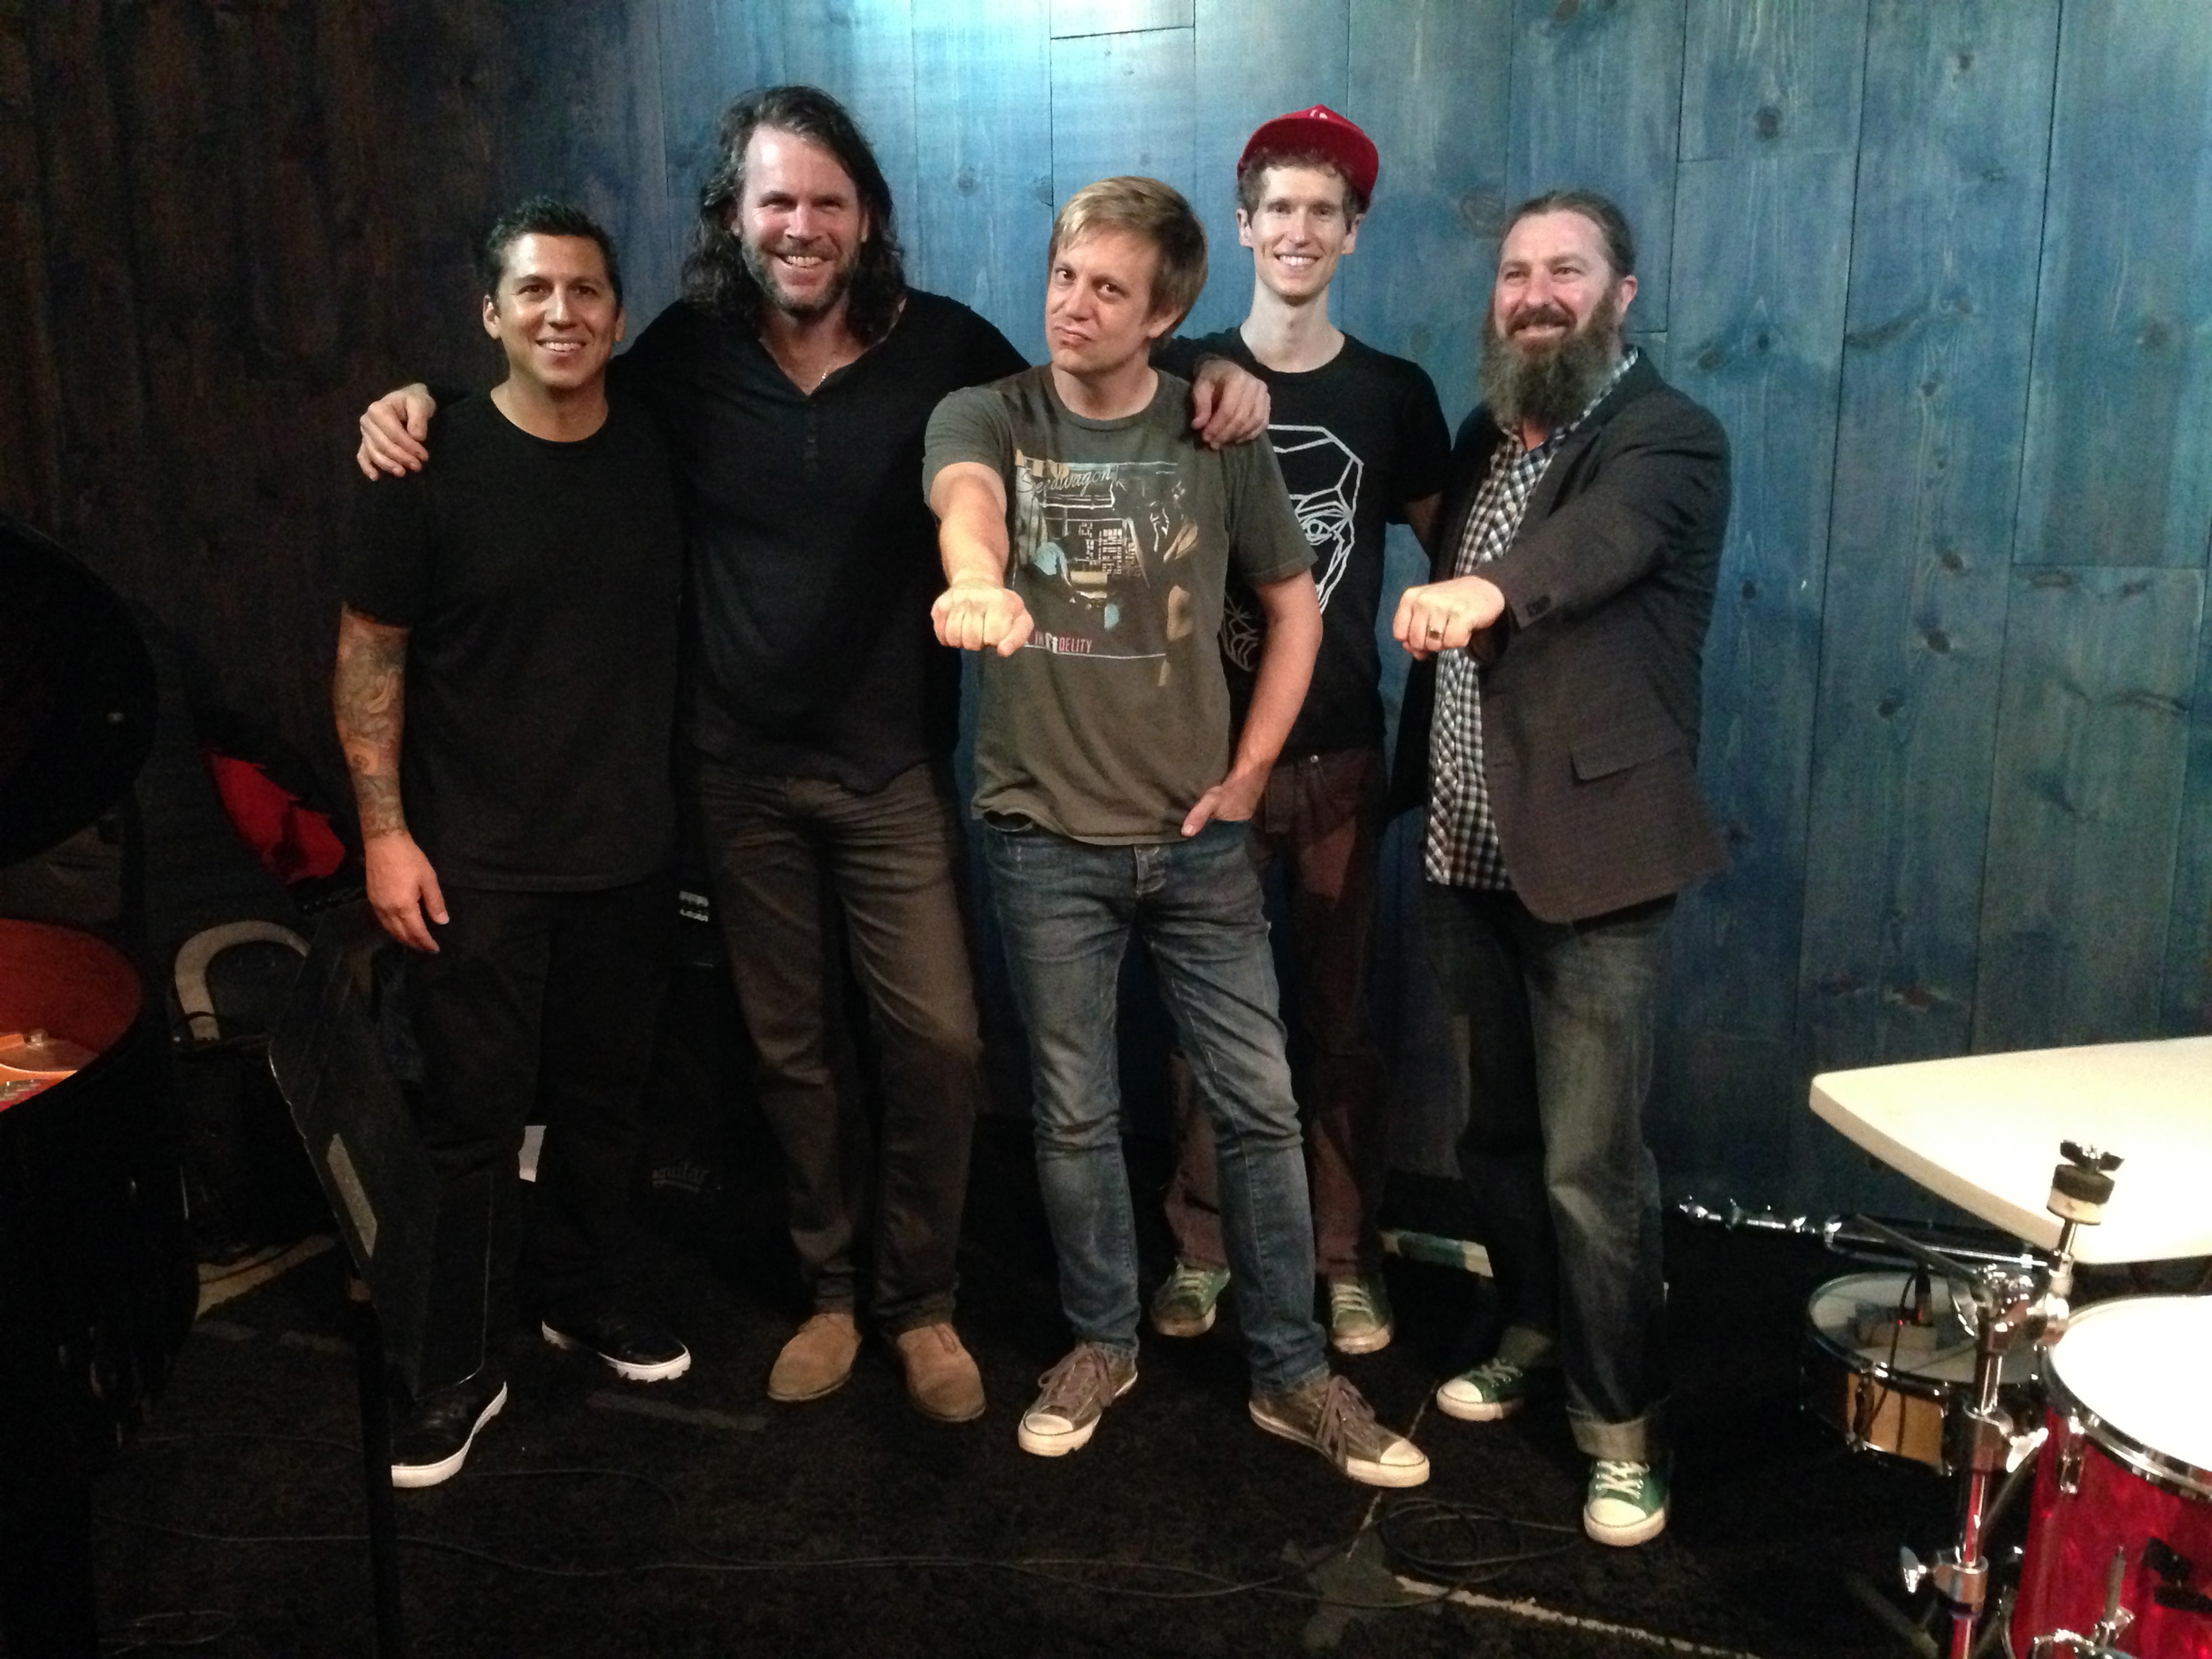 after Jeff Babko & The Meat Dept. gig @ Blue Whale, 2014 w/ Mike Elizondo, Tim Lefebvre, Louis Cole & Tim Young